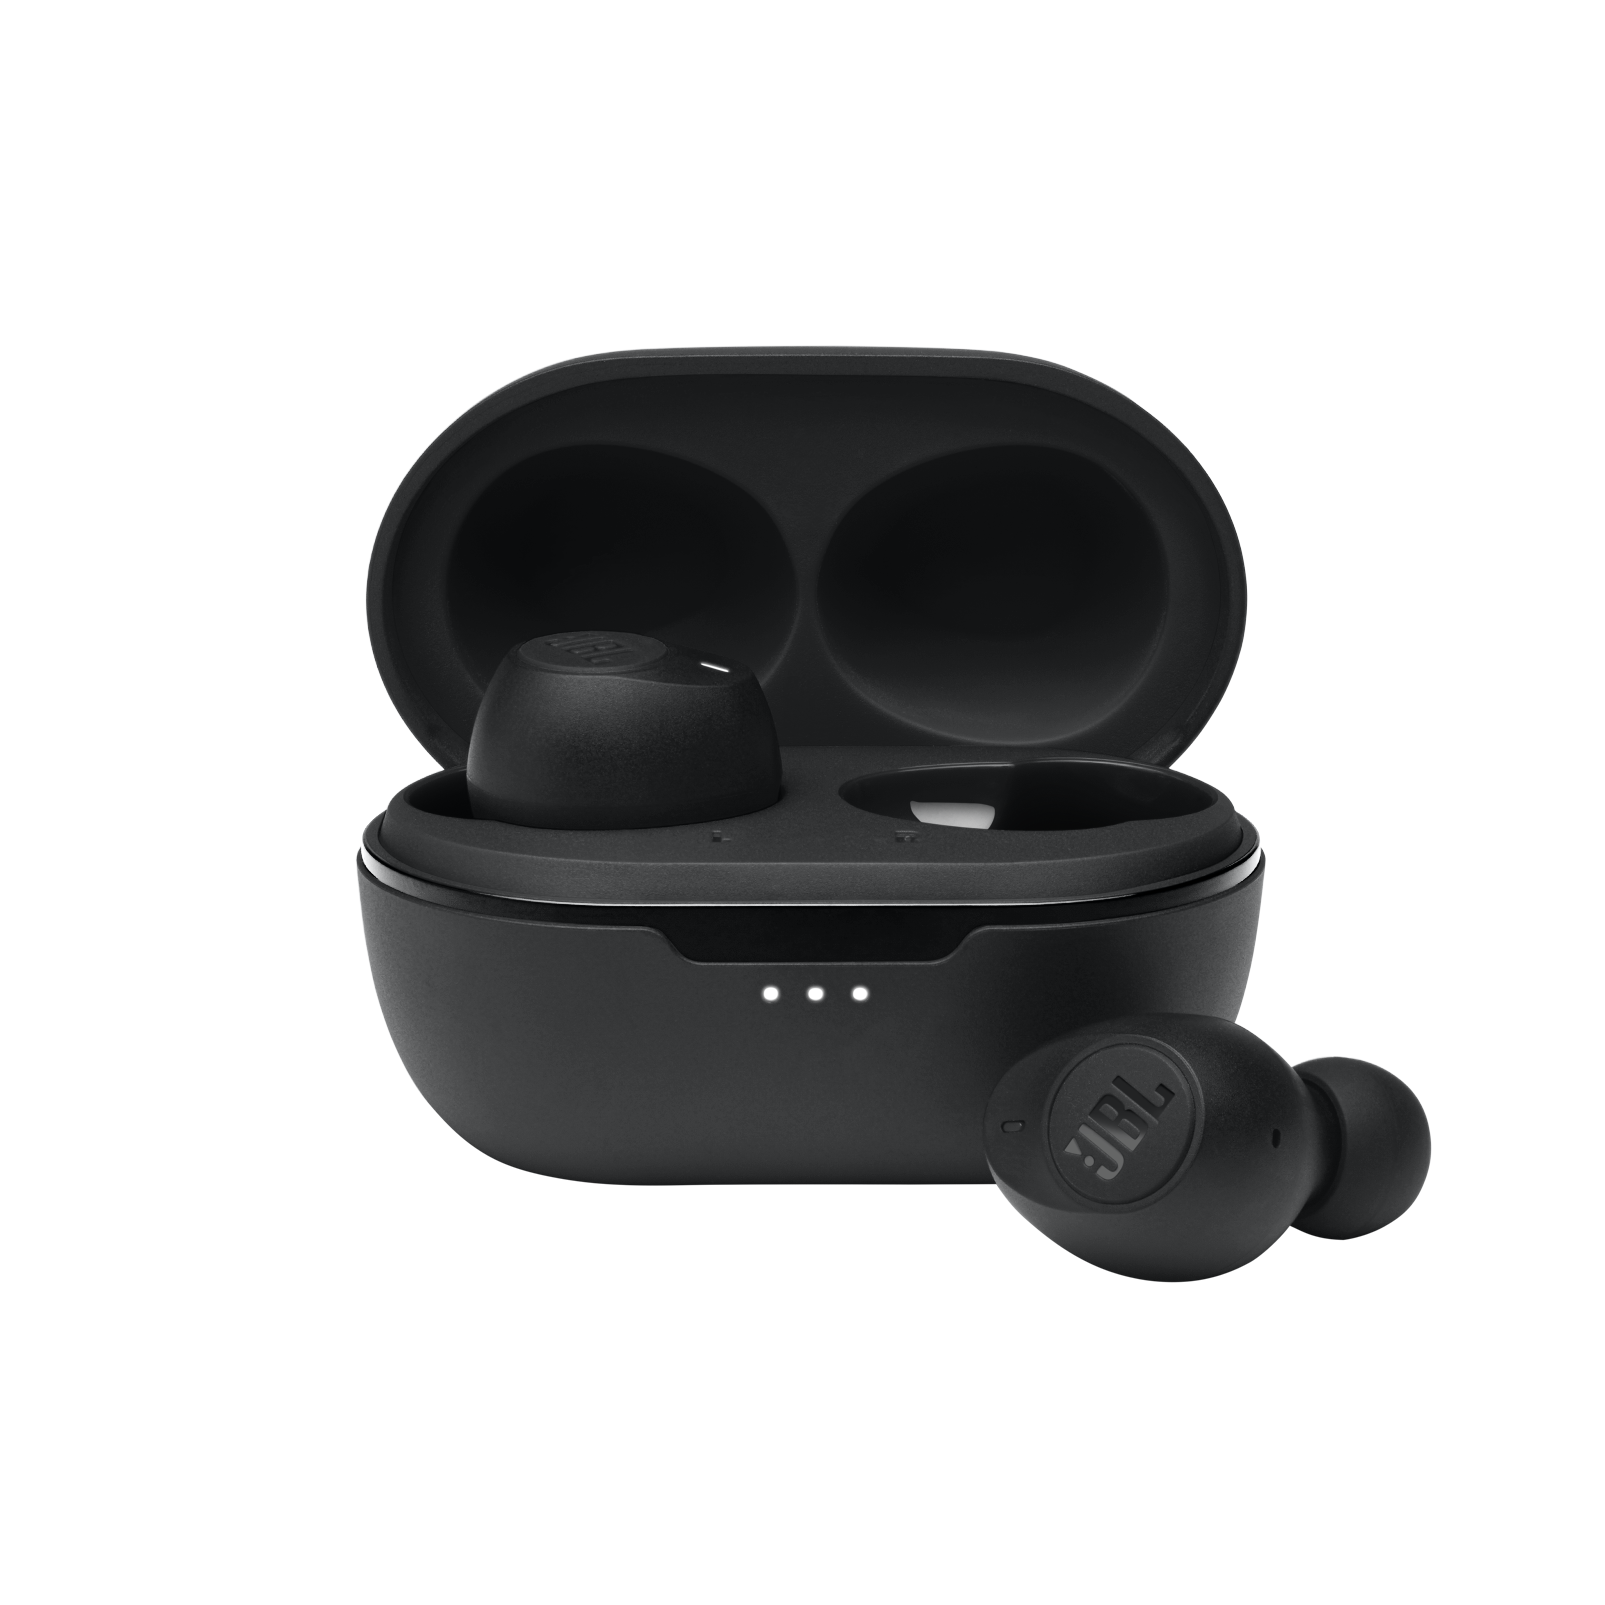 JBL Tune 115TWS - Black - True wireless earbuds - Hero